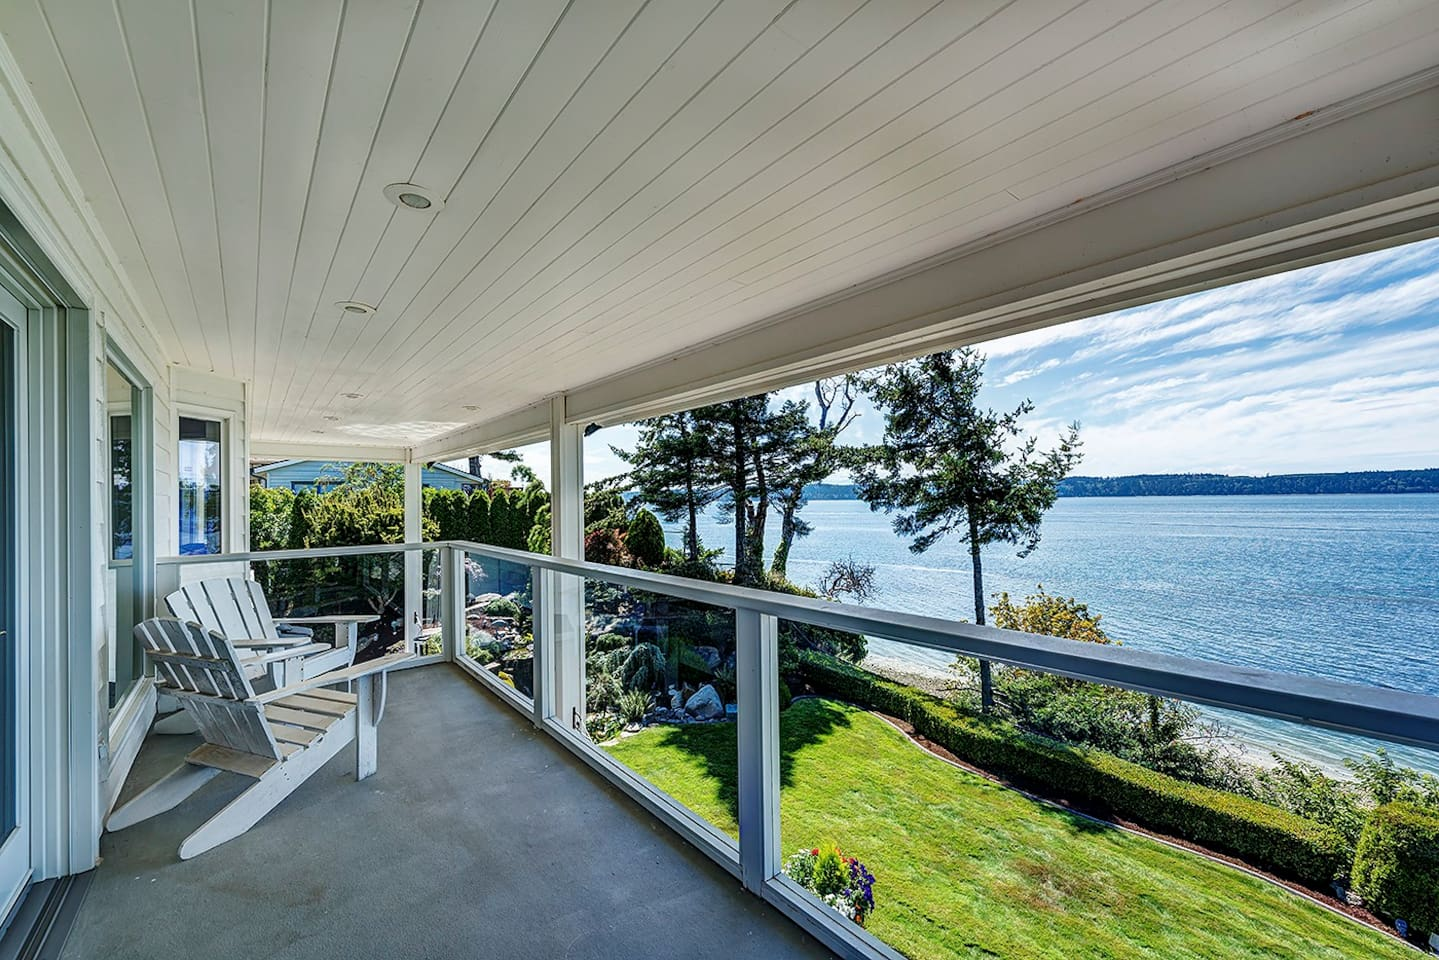 """Spacious and private patio off the Master Bedroom offers """"Oohs"""" and """"Ahhhs"""" view! And this is only the beginning of this magnificent estate..."""